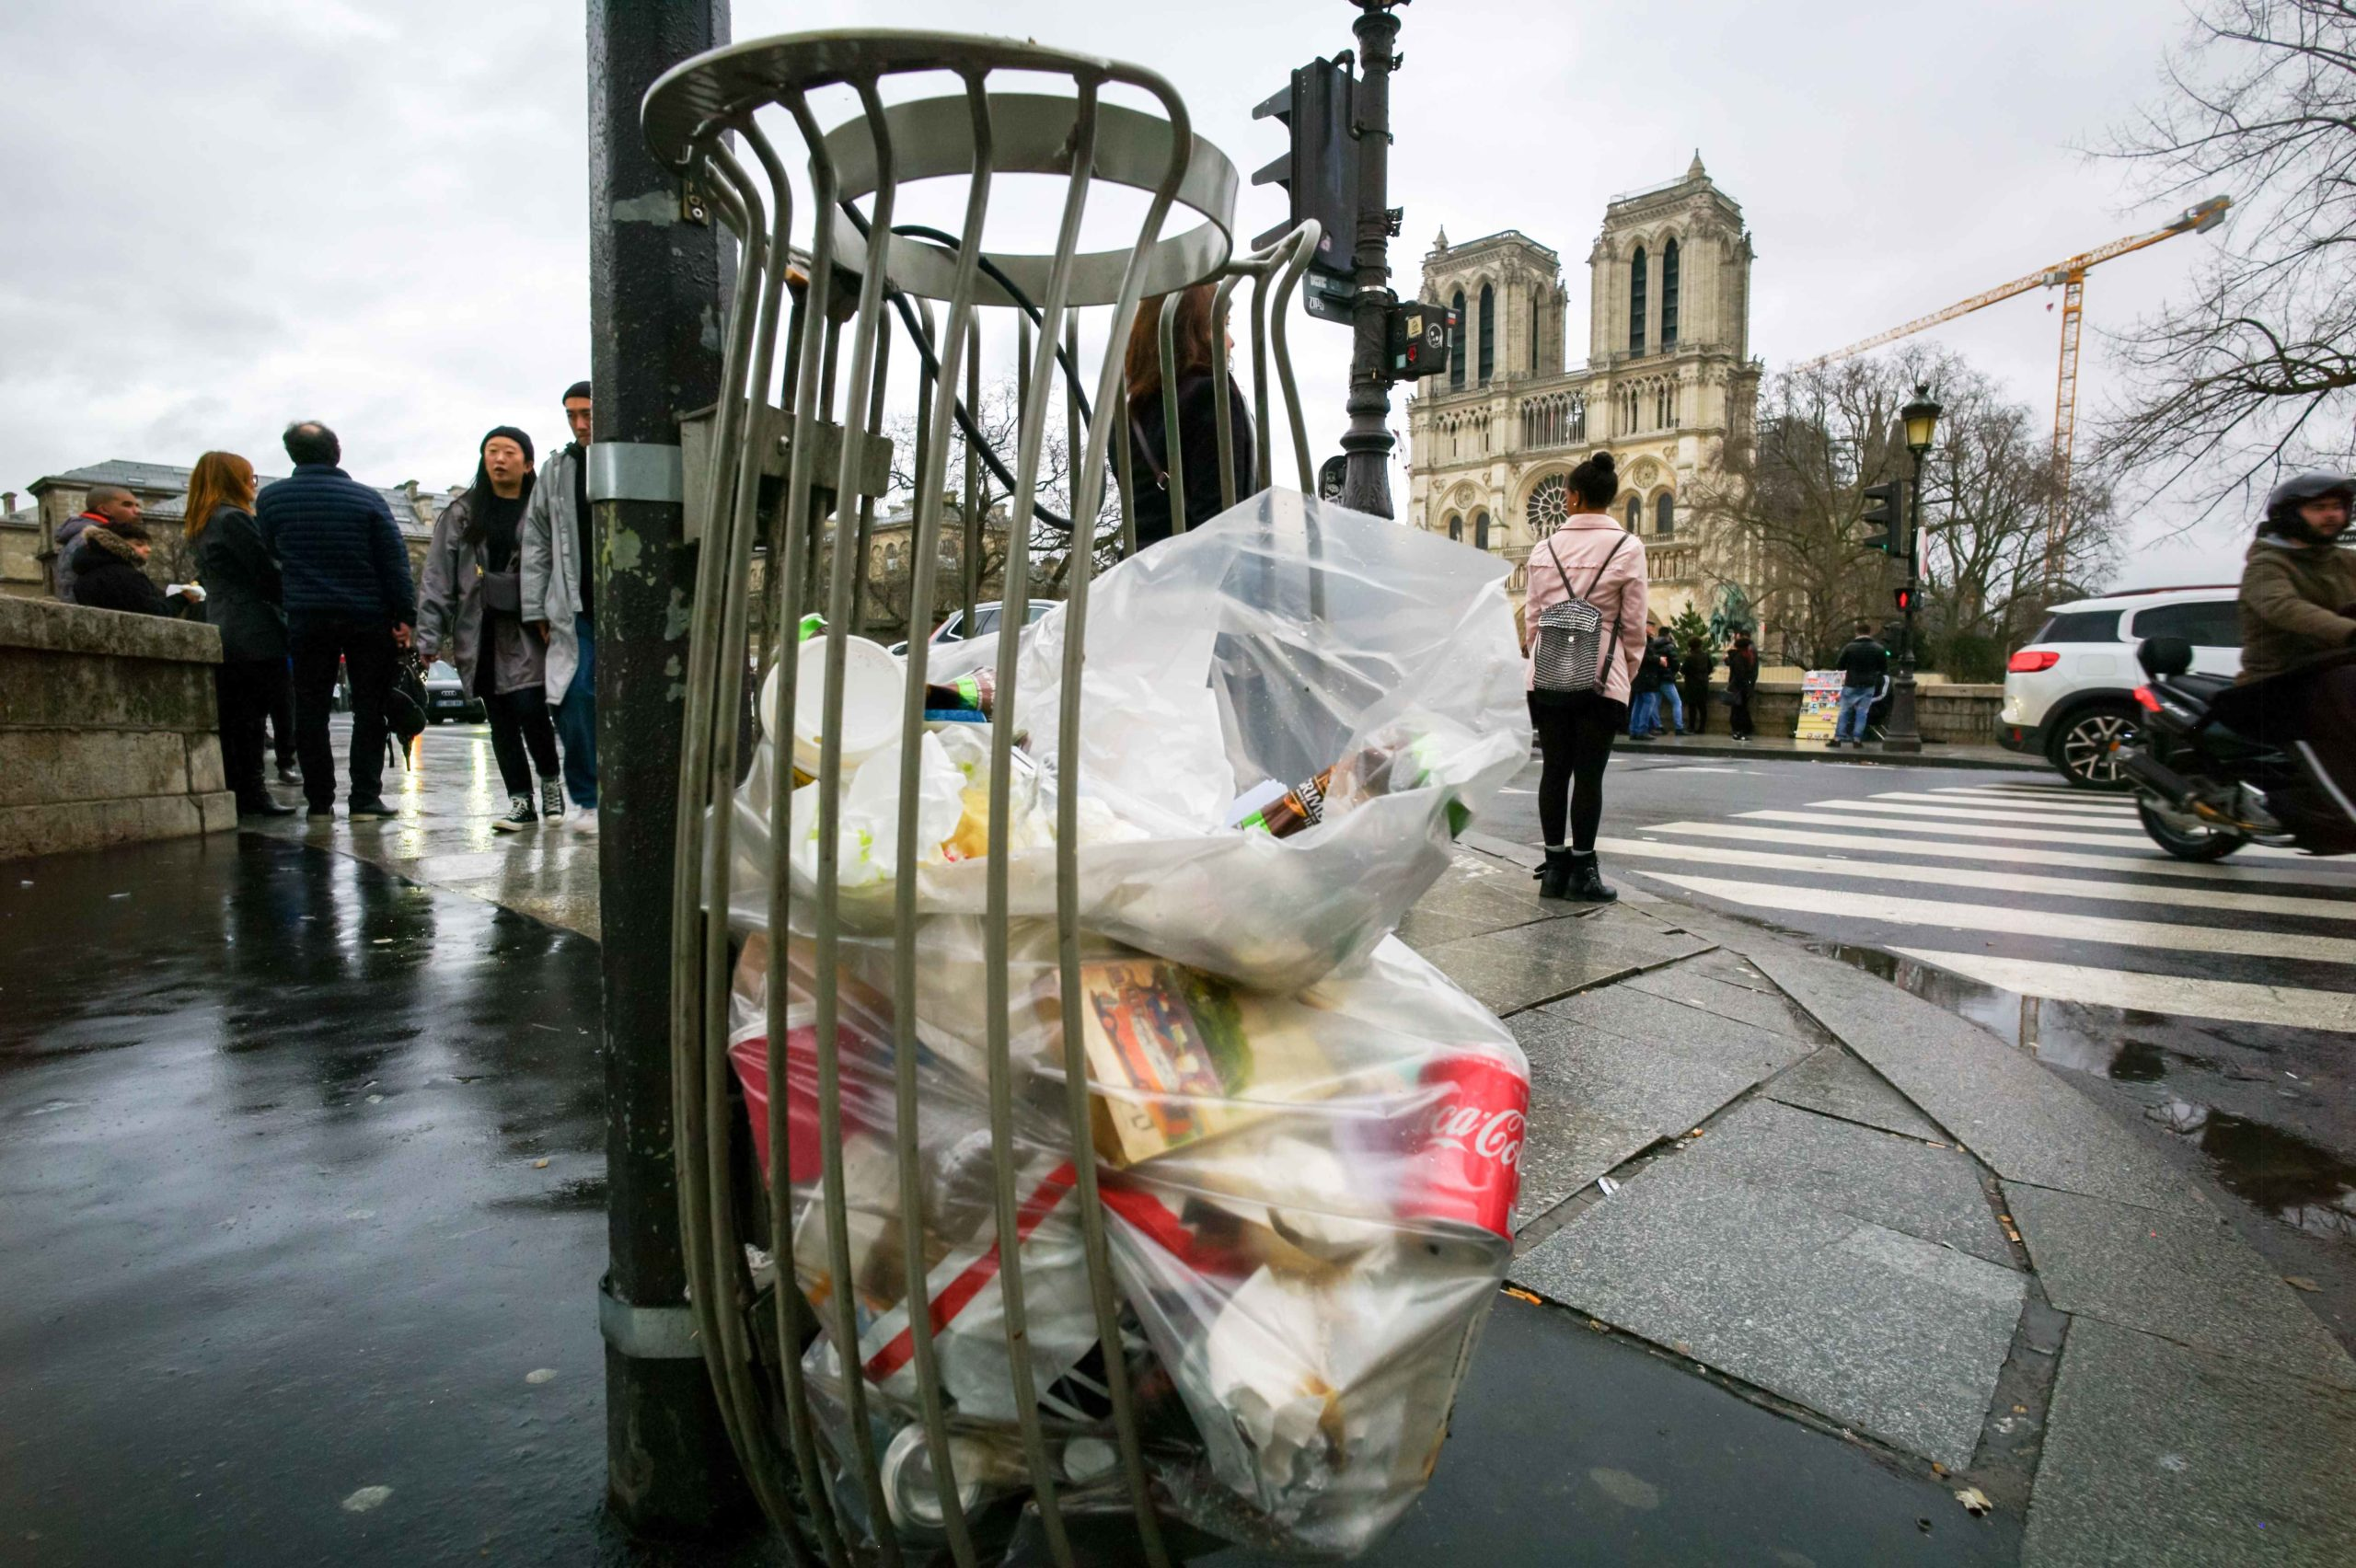 For several days, the effects of the garbage strike have been visible in the streets of Paris, as can be seen in these pictures taken on February 2, 2020, and in some cities of the suburbs, especially in the east of the île-de-France region. The truck gar